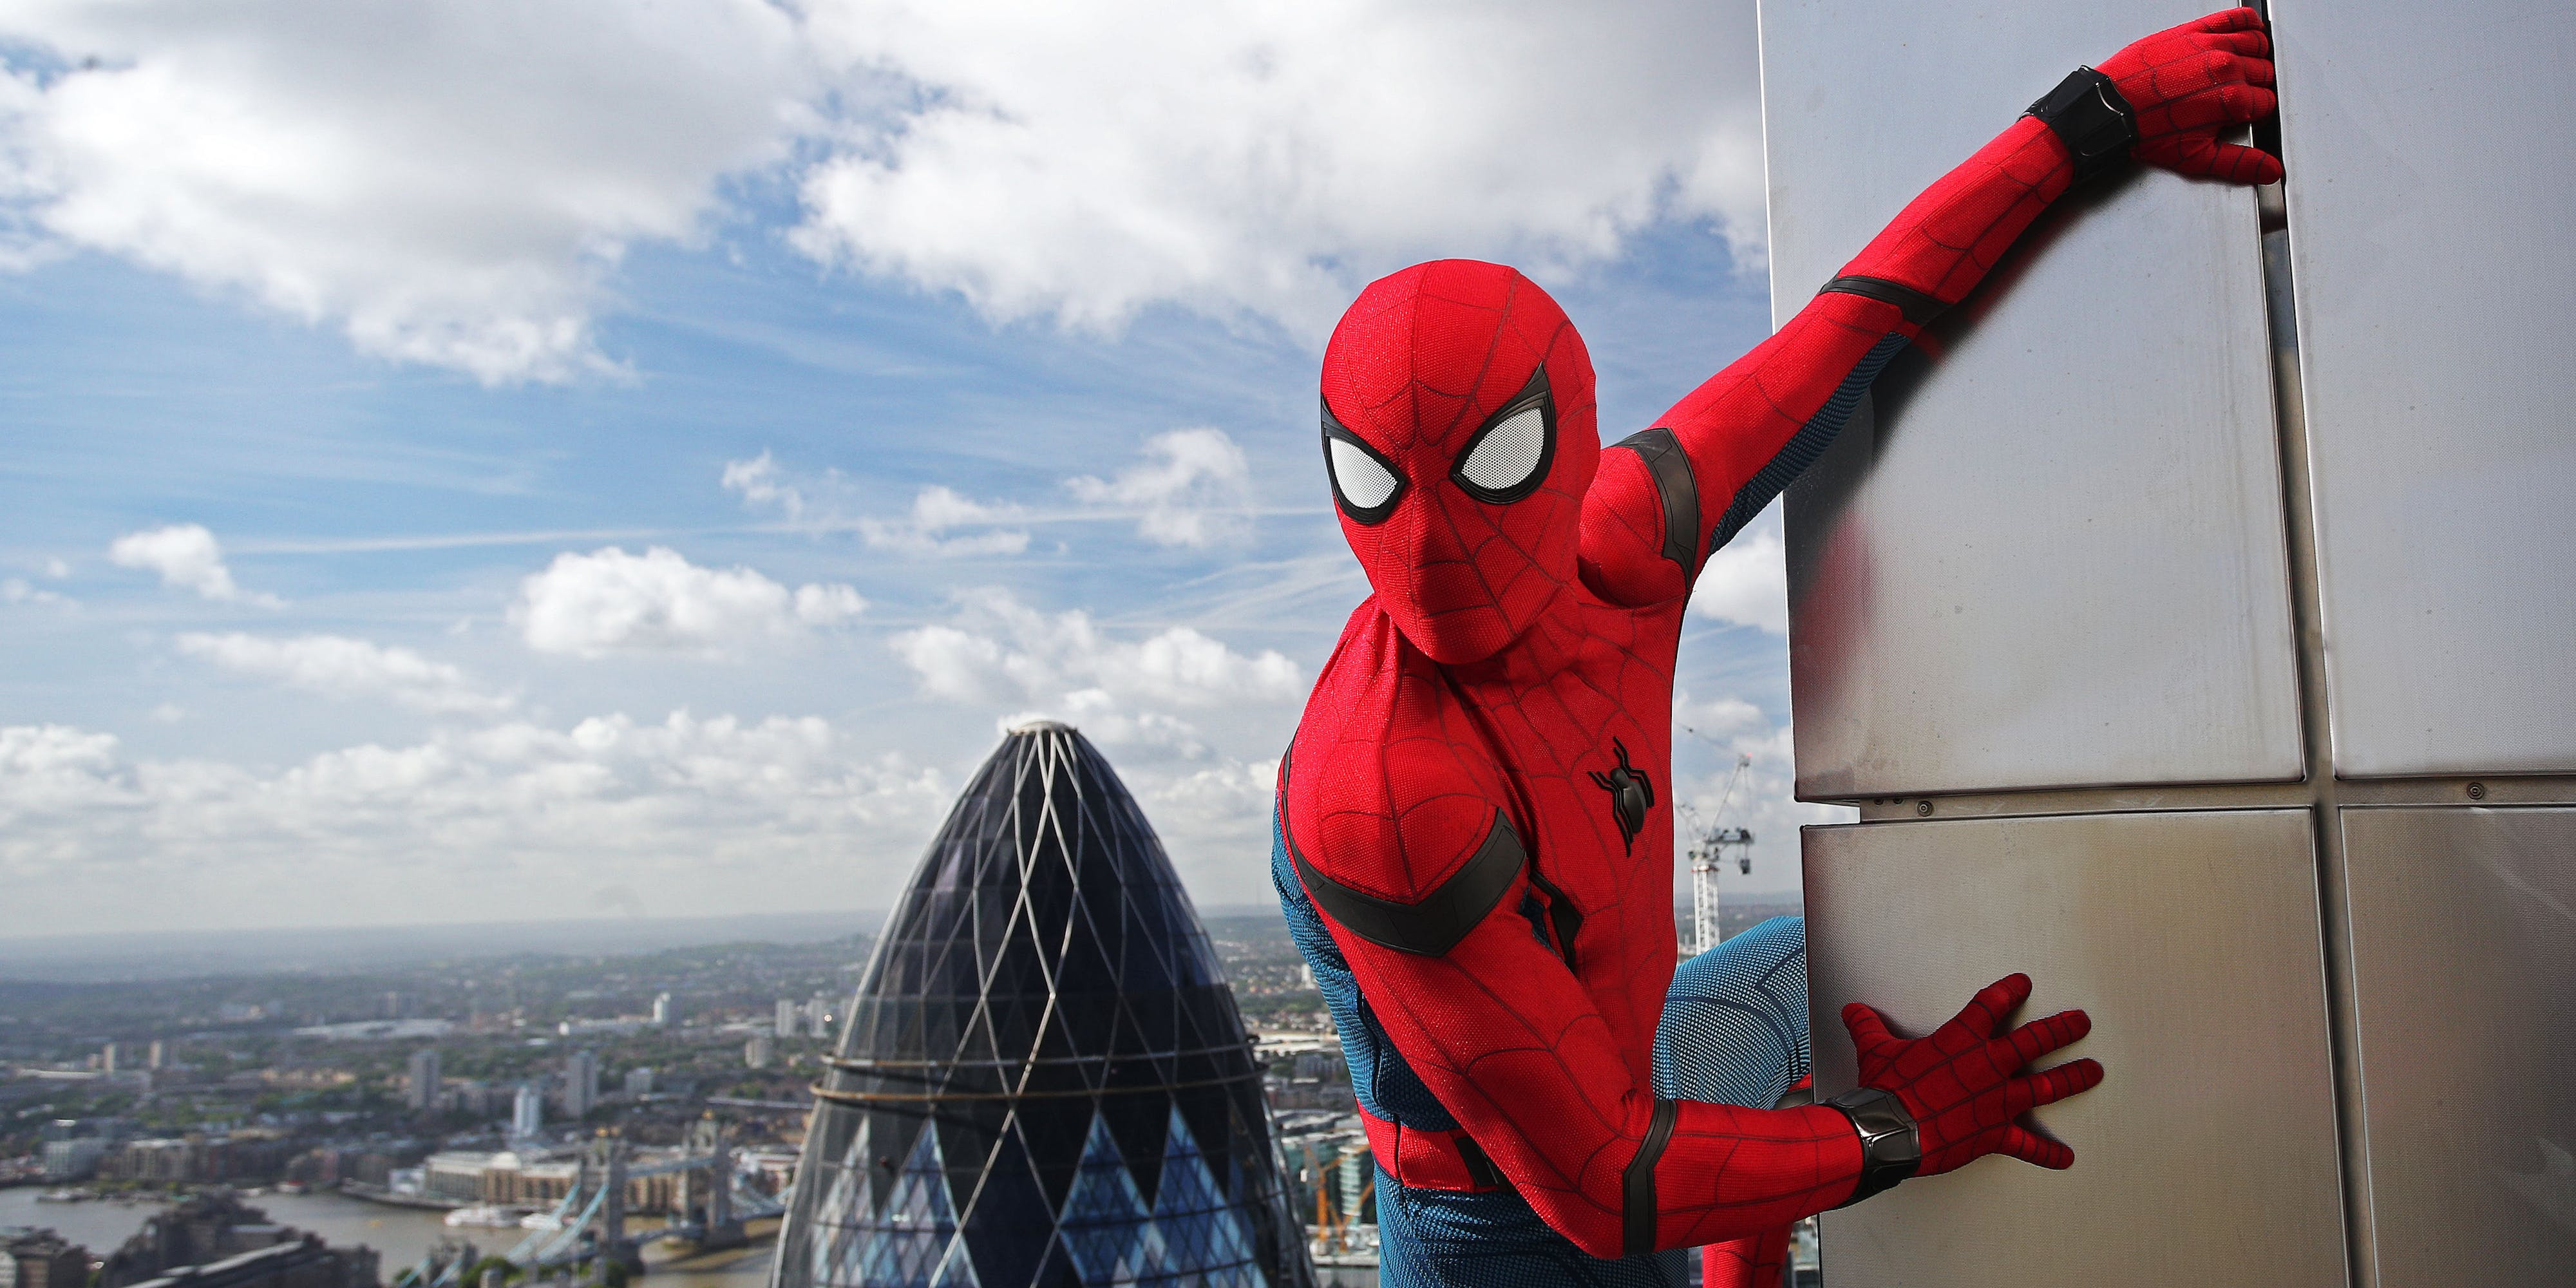 Review of Spider-Man: Far From Home